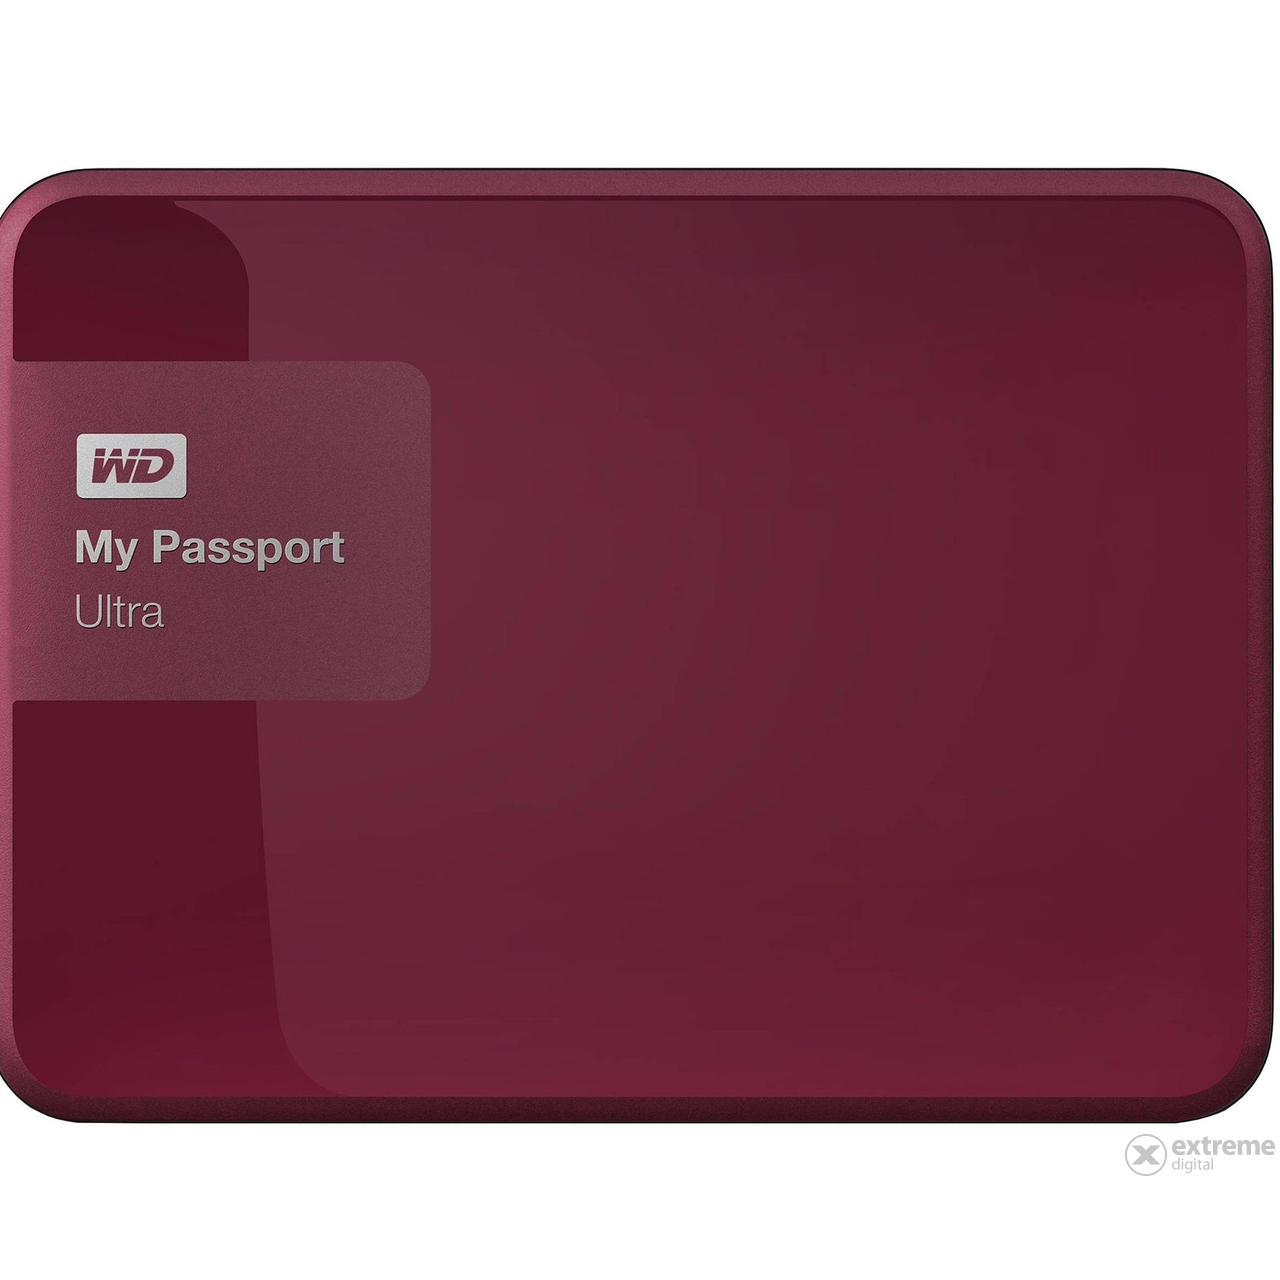 wd-my-passport-ultra-1tb-2-5-kulso_83d63946.jpg